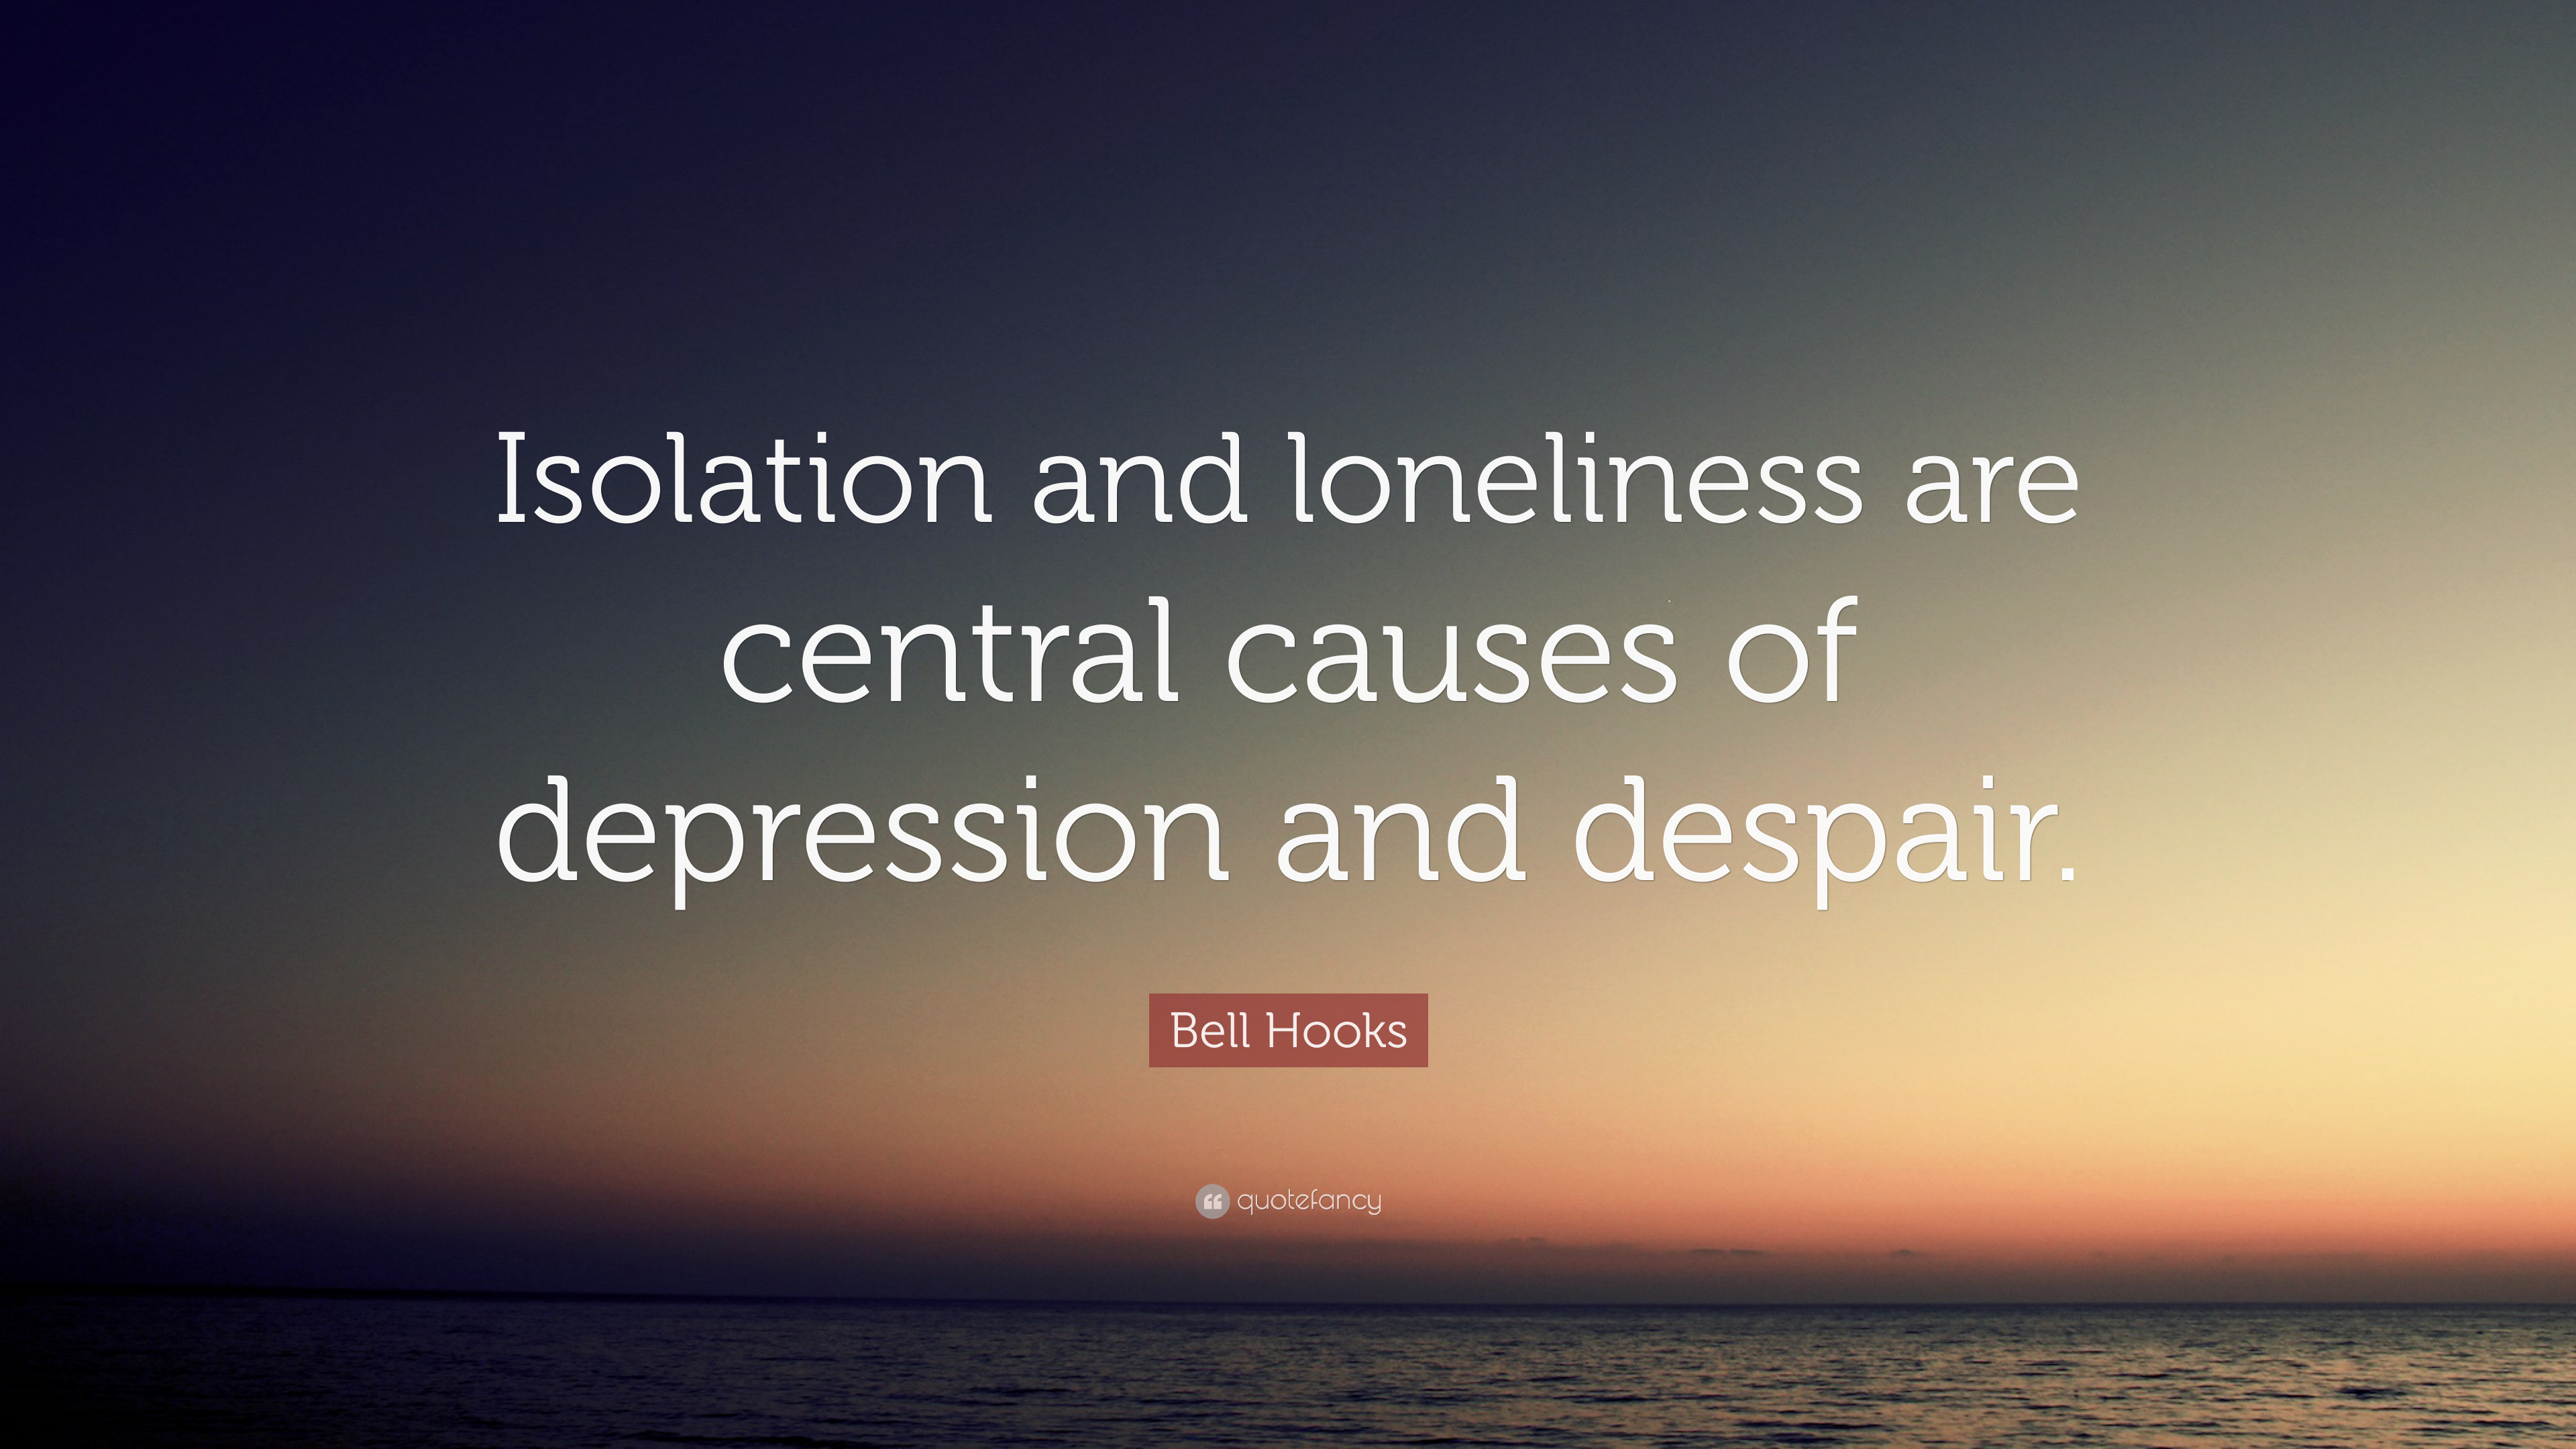 the causes of holdens depression and loneliness Depression in the catcher in the rye, by jd salinger essay 1334 words 6 pages depression, a common mental disorder that presents with depressed mood, loss of interest or pleasure, feelings of guilt or low self-worth, disturbed sleep or appetite, low energy, and poor concentration.